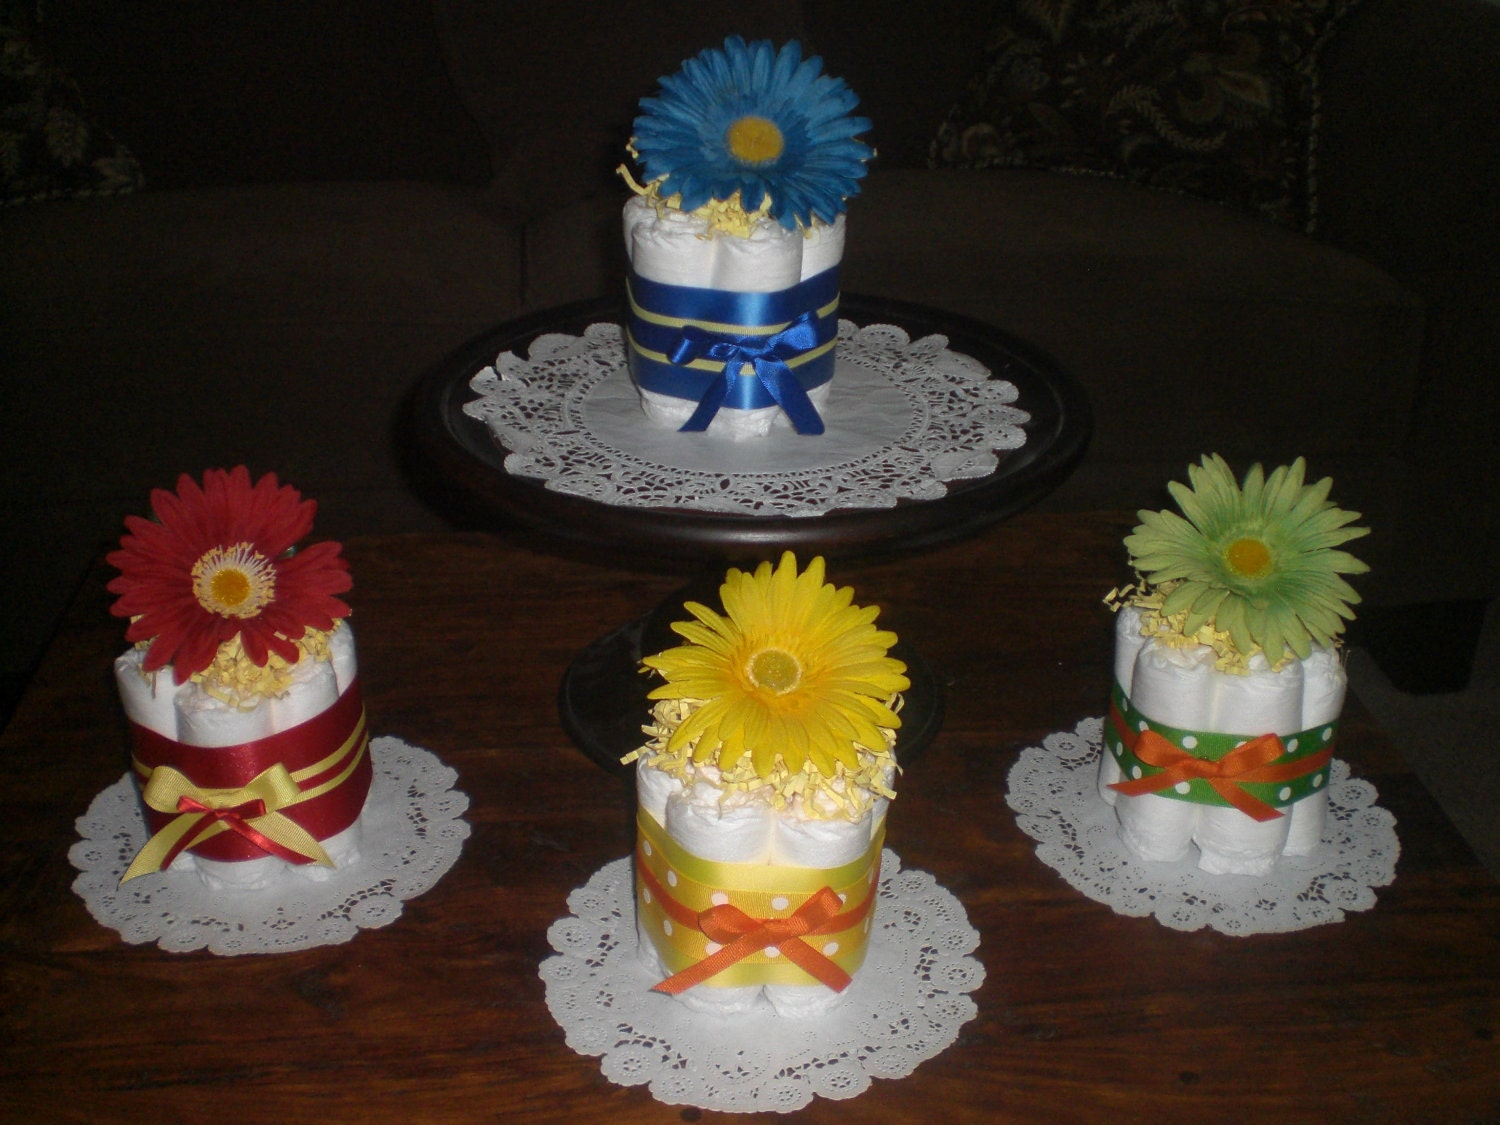 Cake Centerpieces For Baby Shower : Flower Baby Shower Centerpieces Primary colors mini diaper